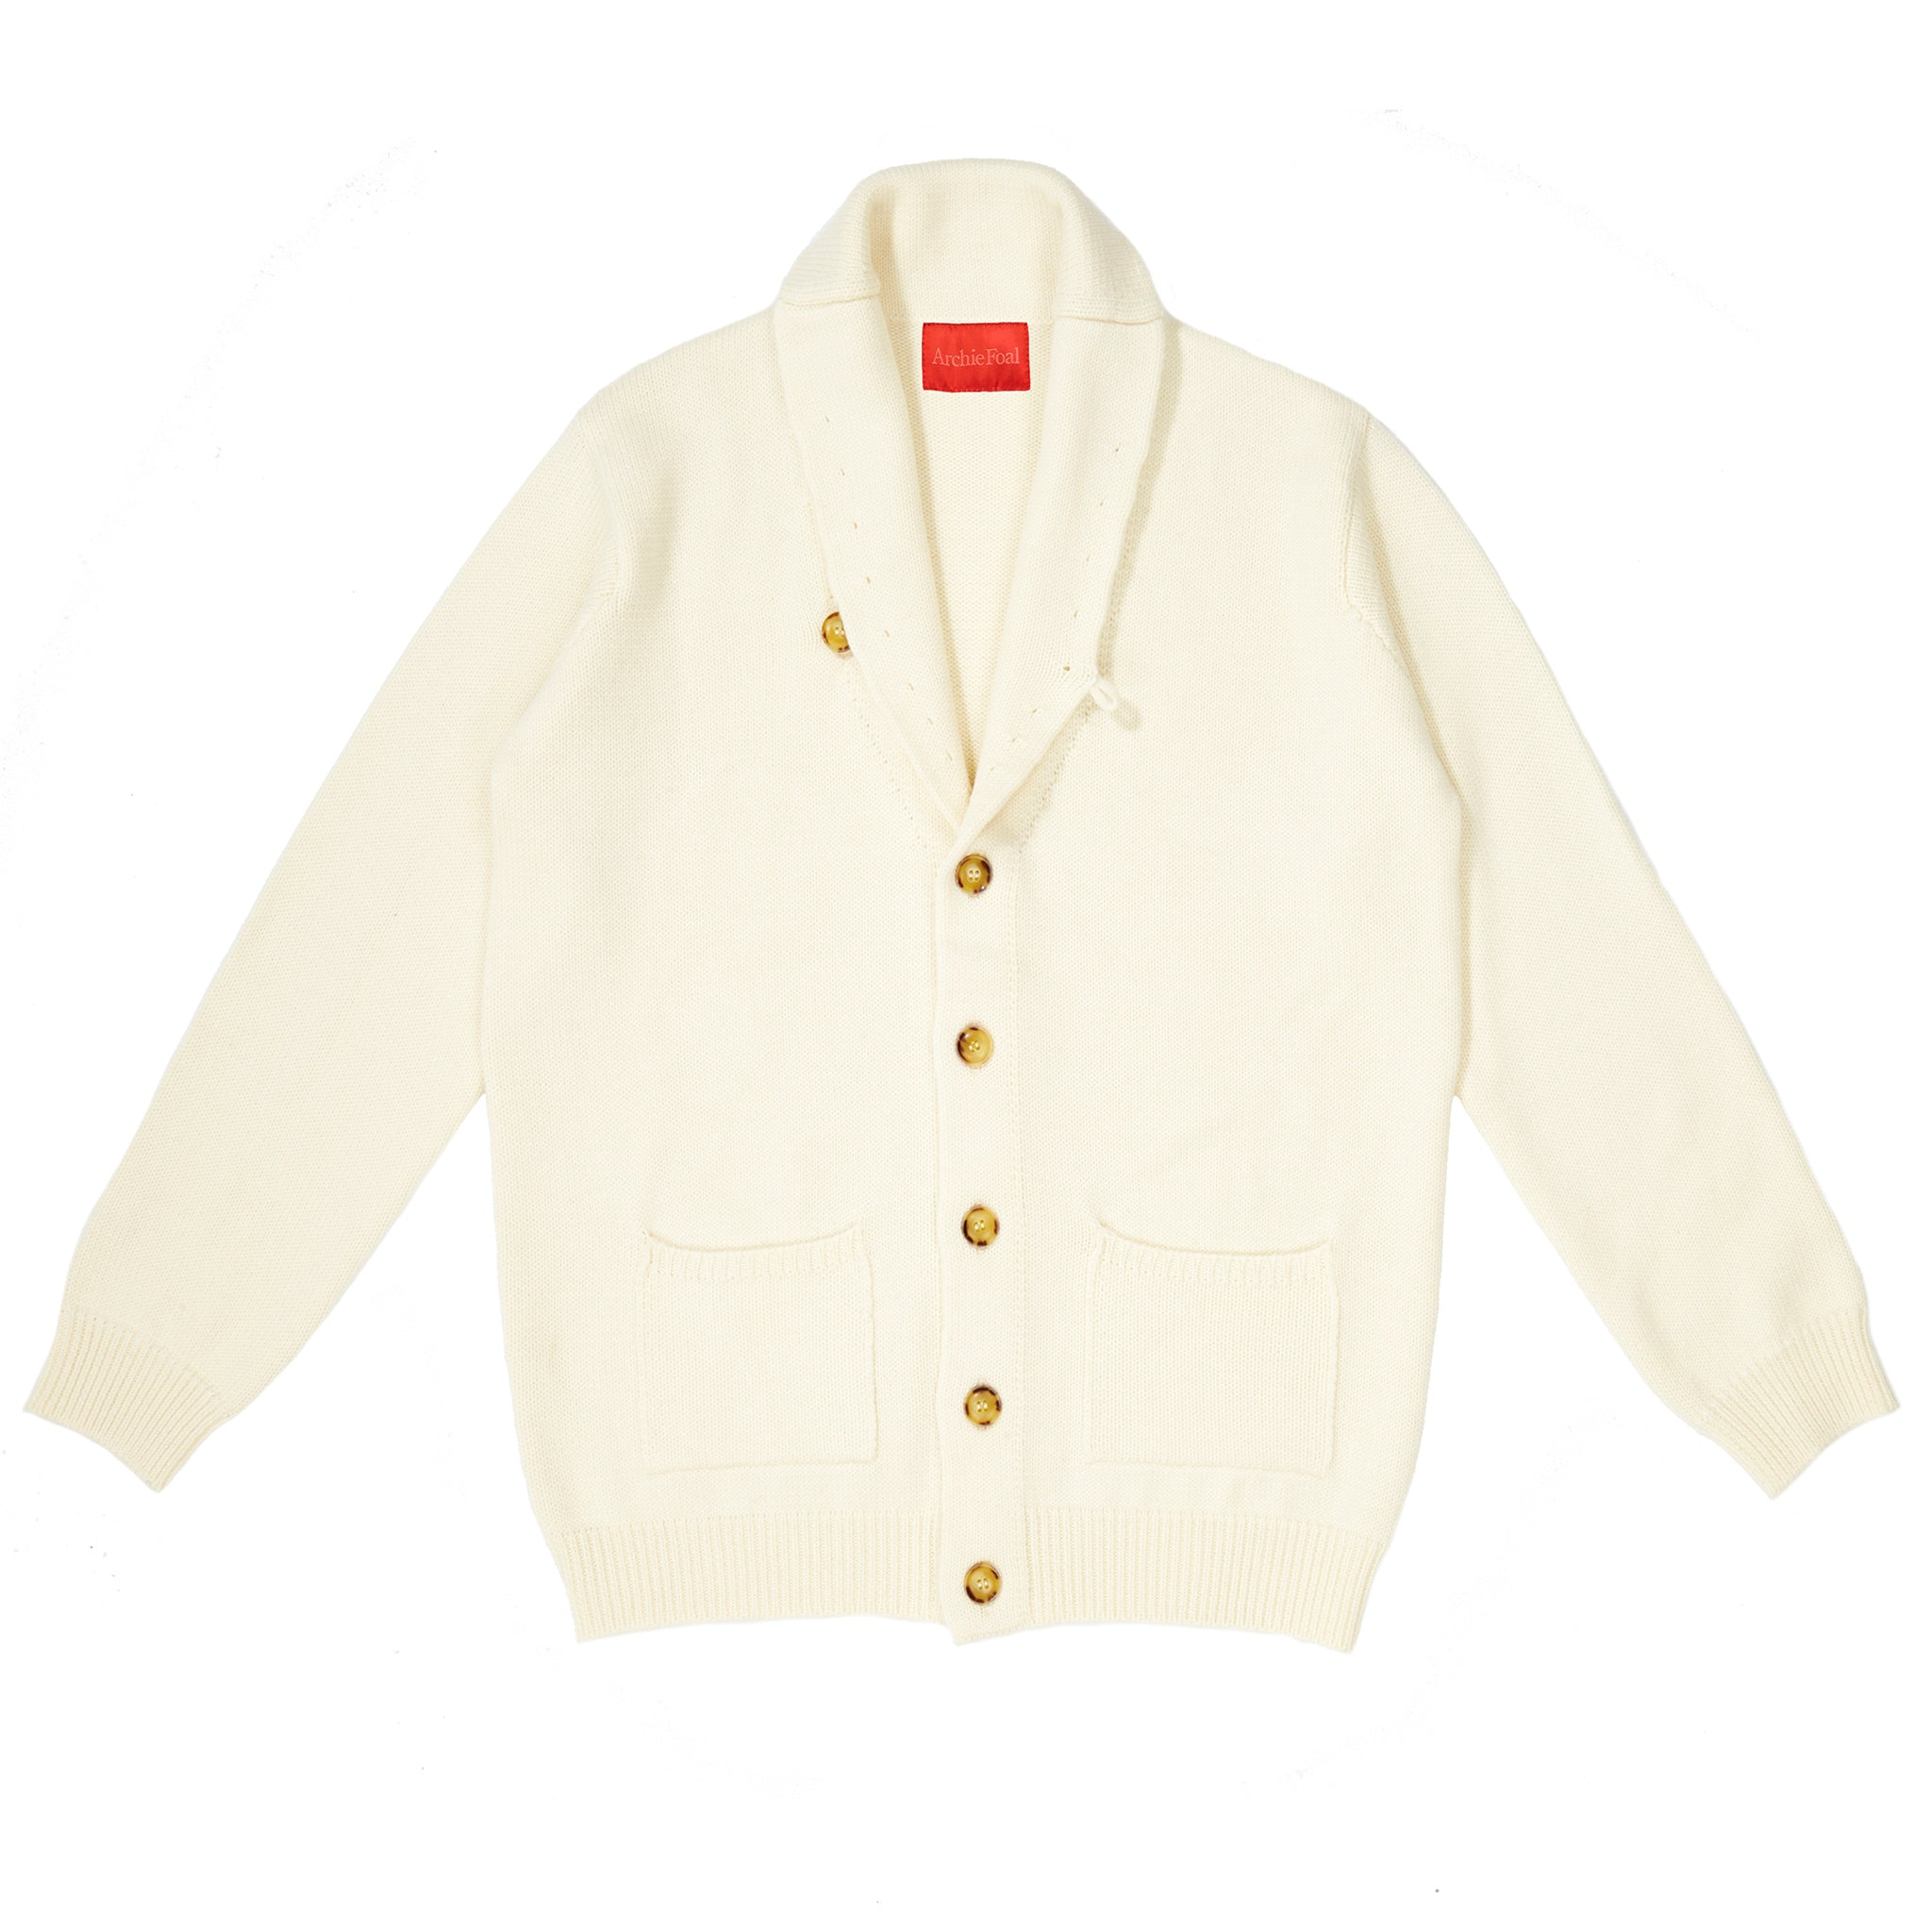 Archie Foal Men's KENNAN Shawl Collar Cardigan in Cream